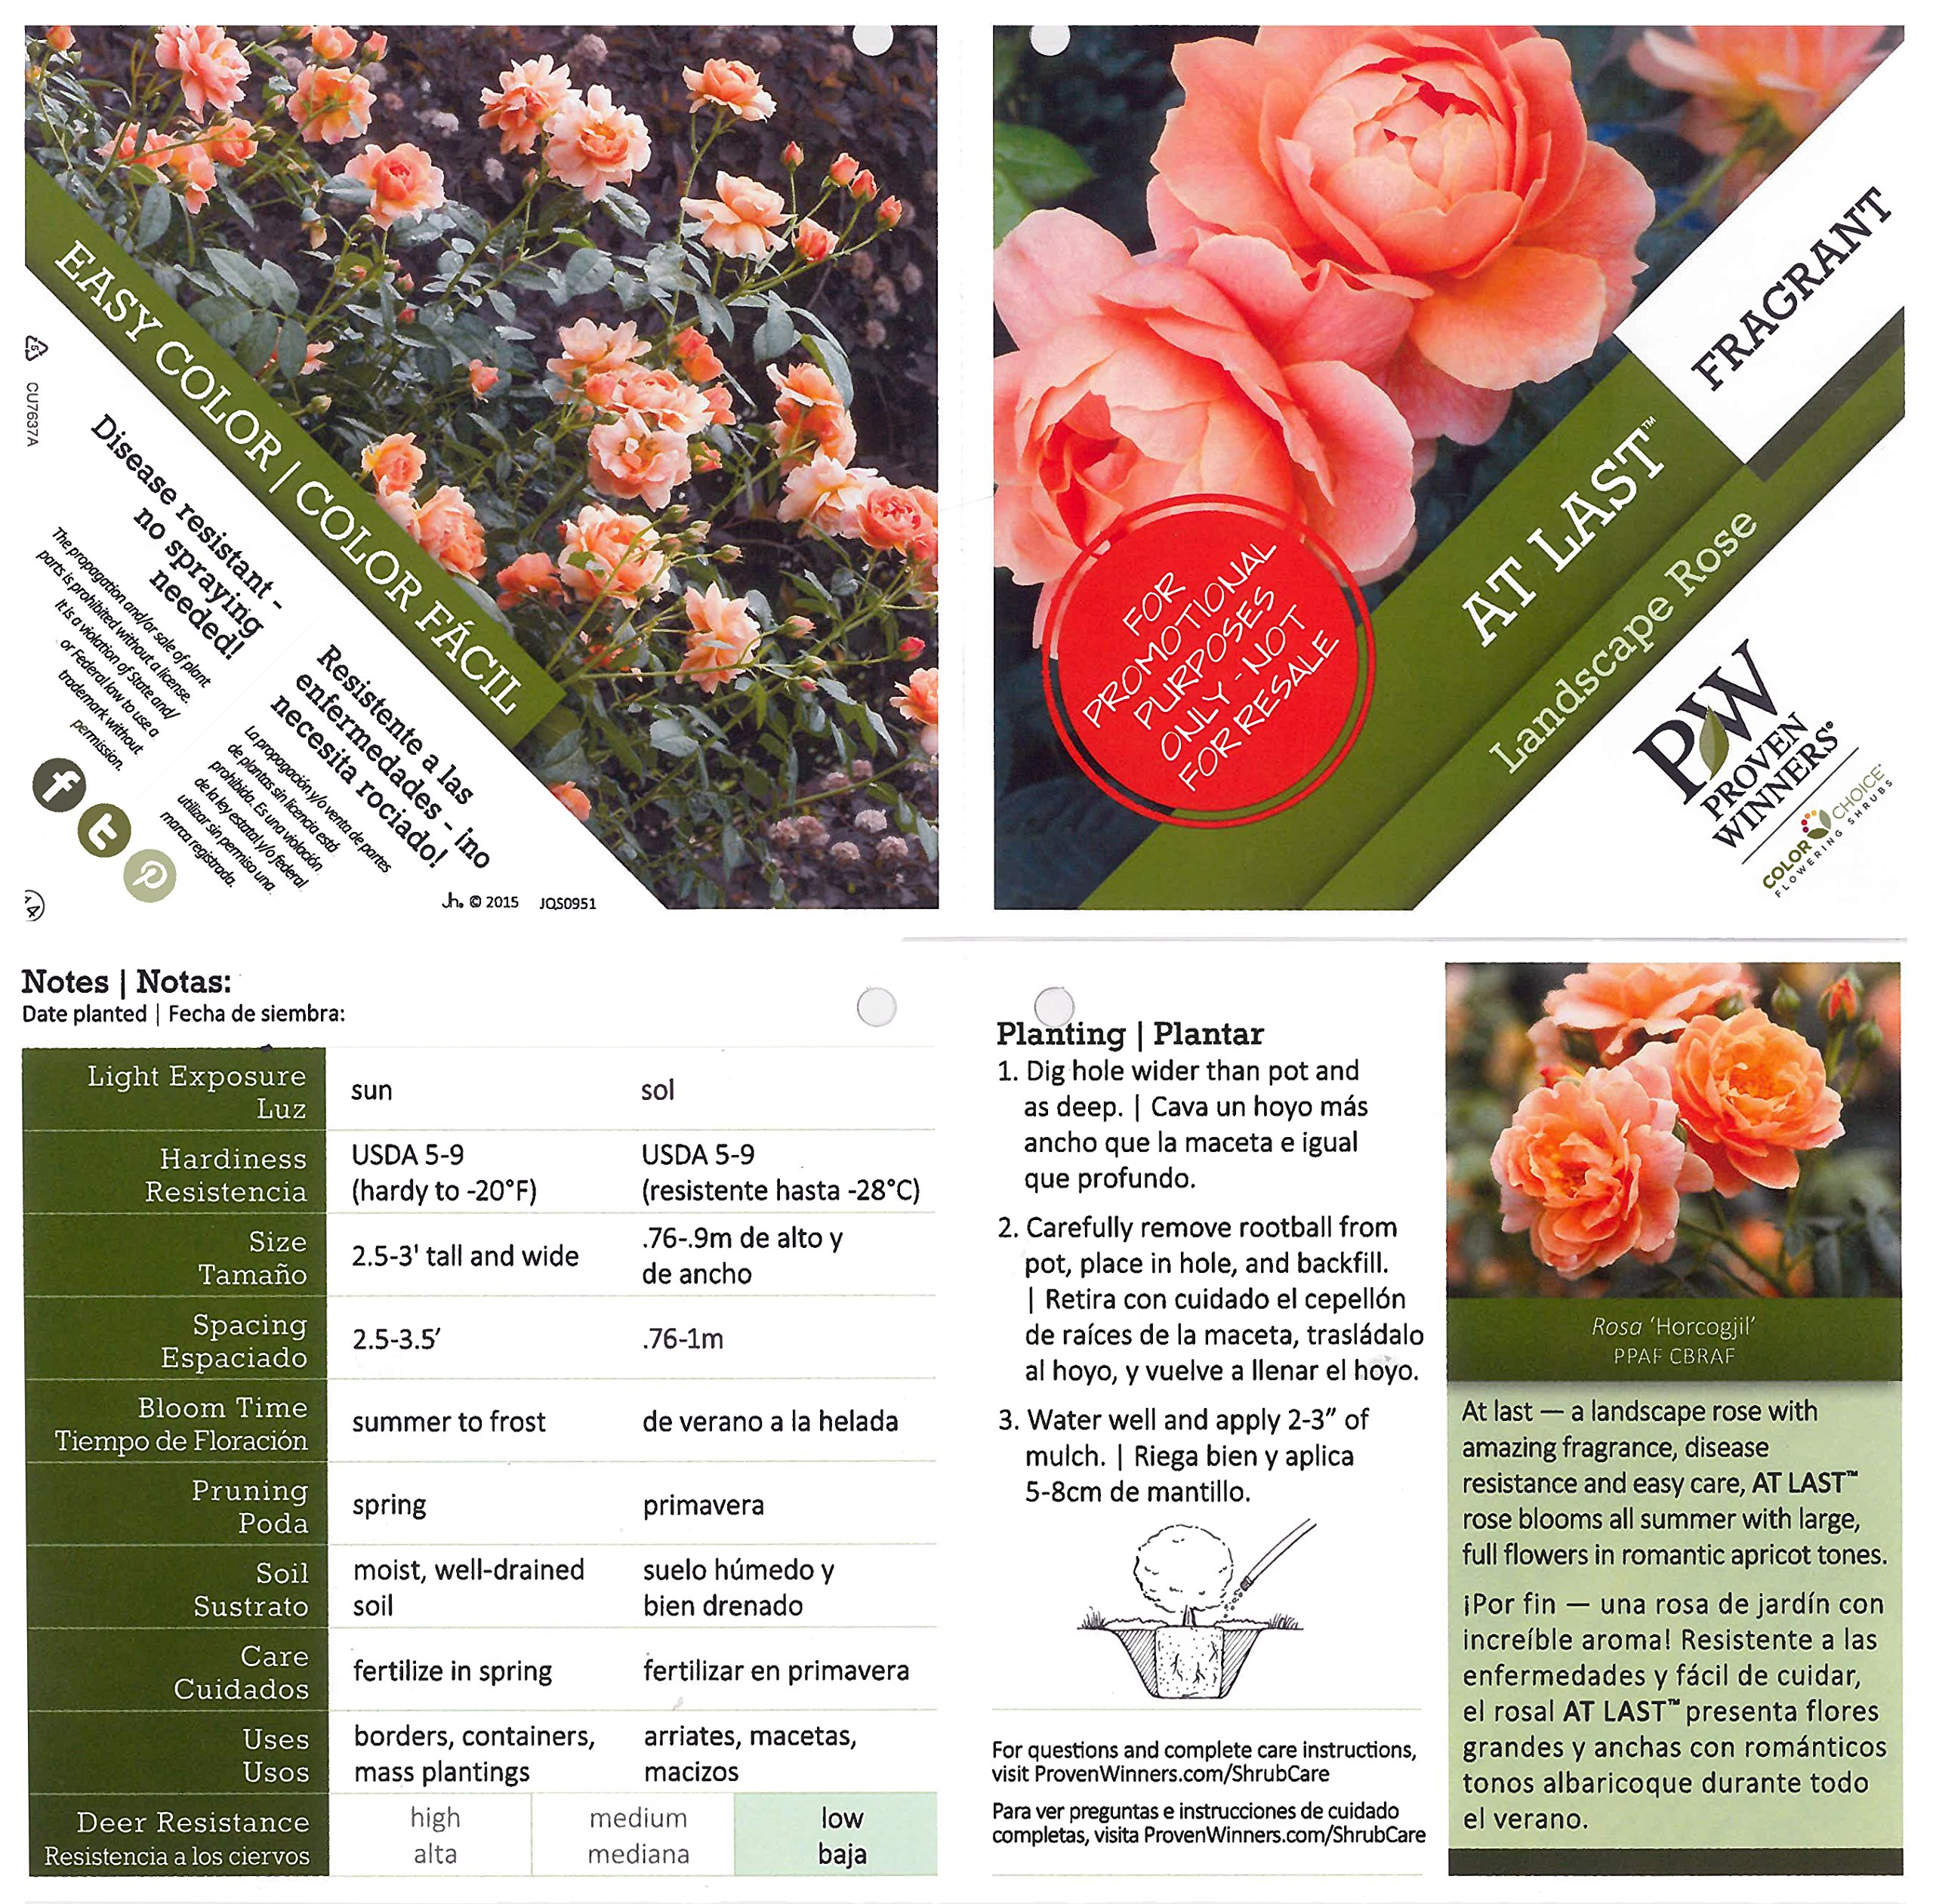 At Last Rose (Rosa) Live Shrub, Orange Flowers, 4.5 in. Quart by Proven Winners (Image #3)